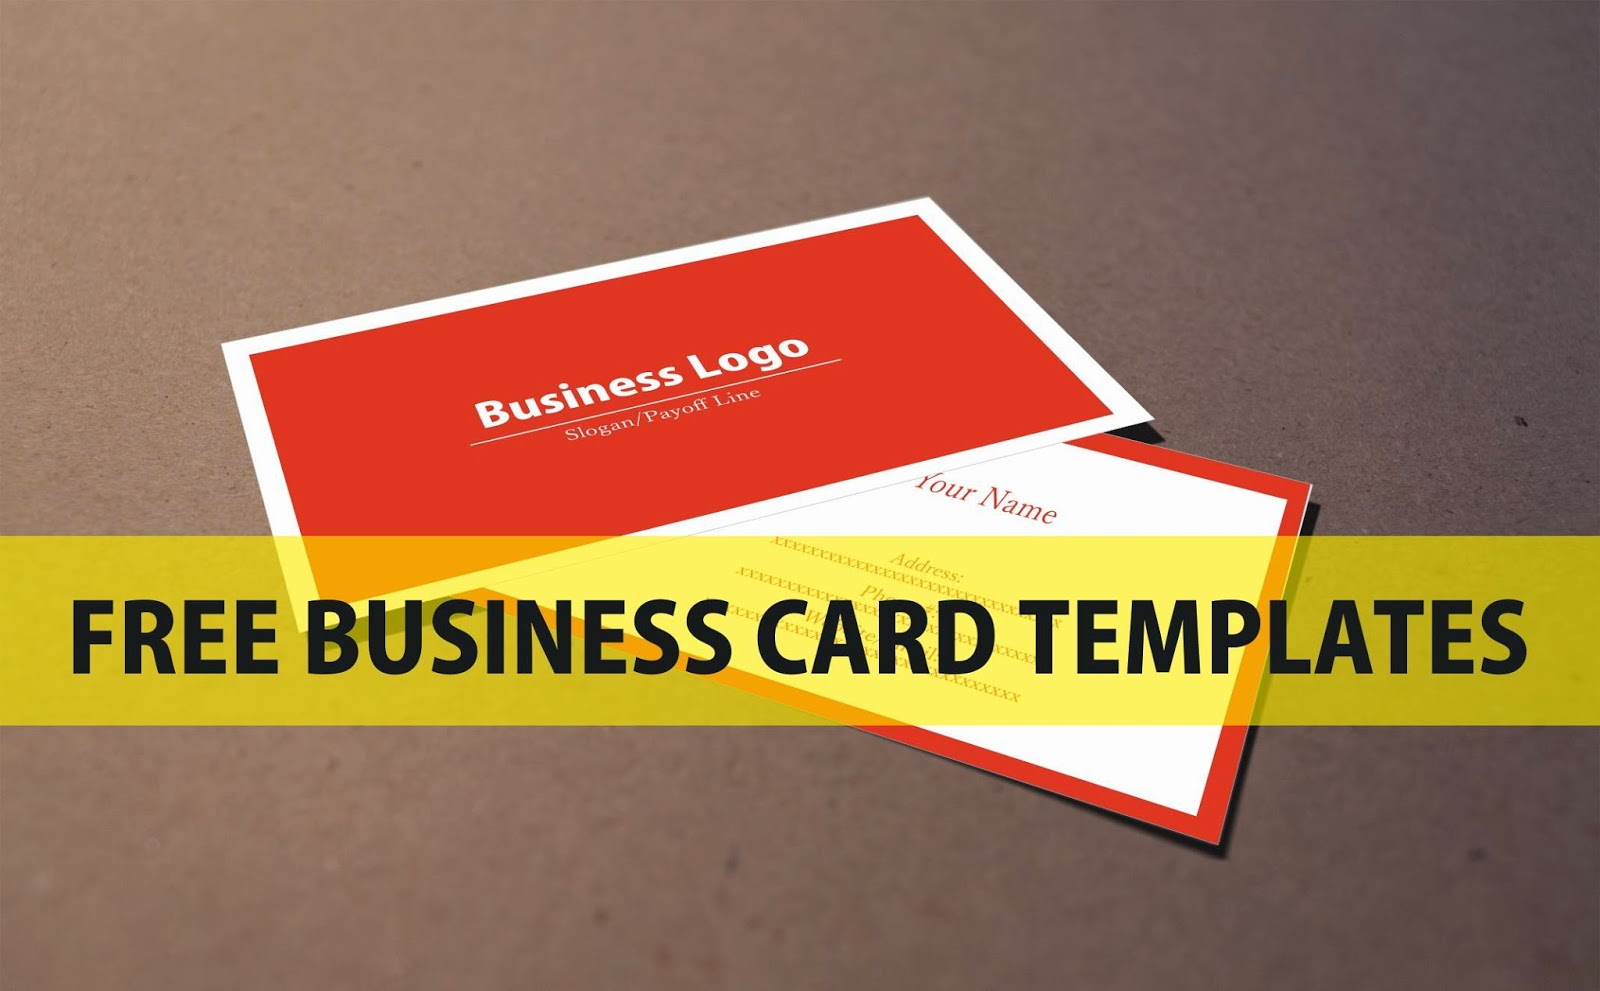 Free Business Card Template - Free business cards template